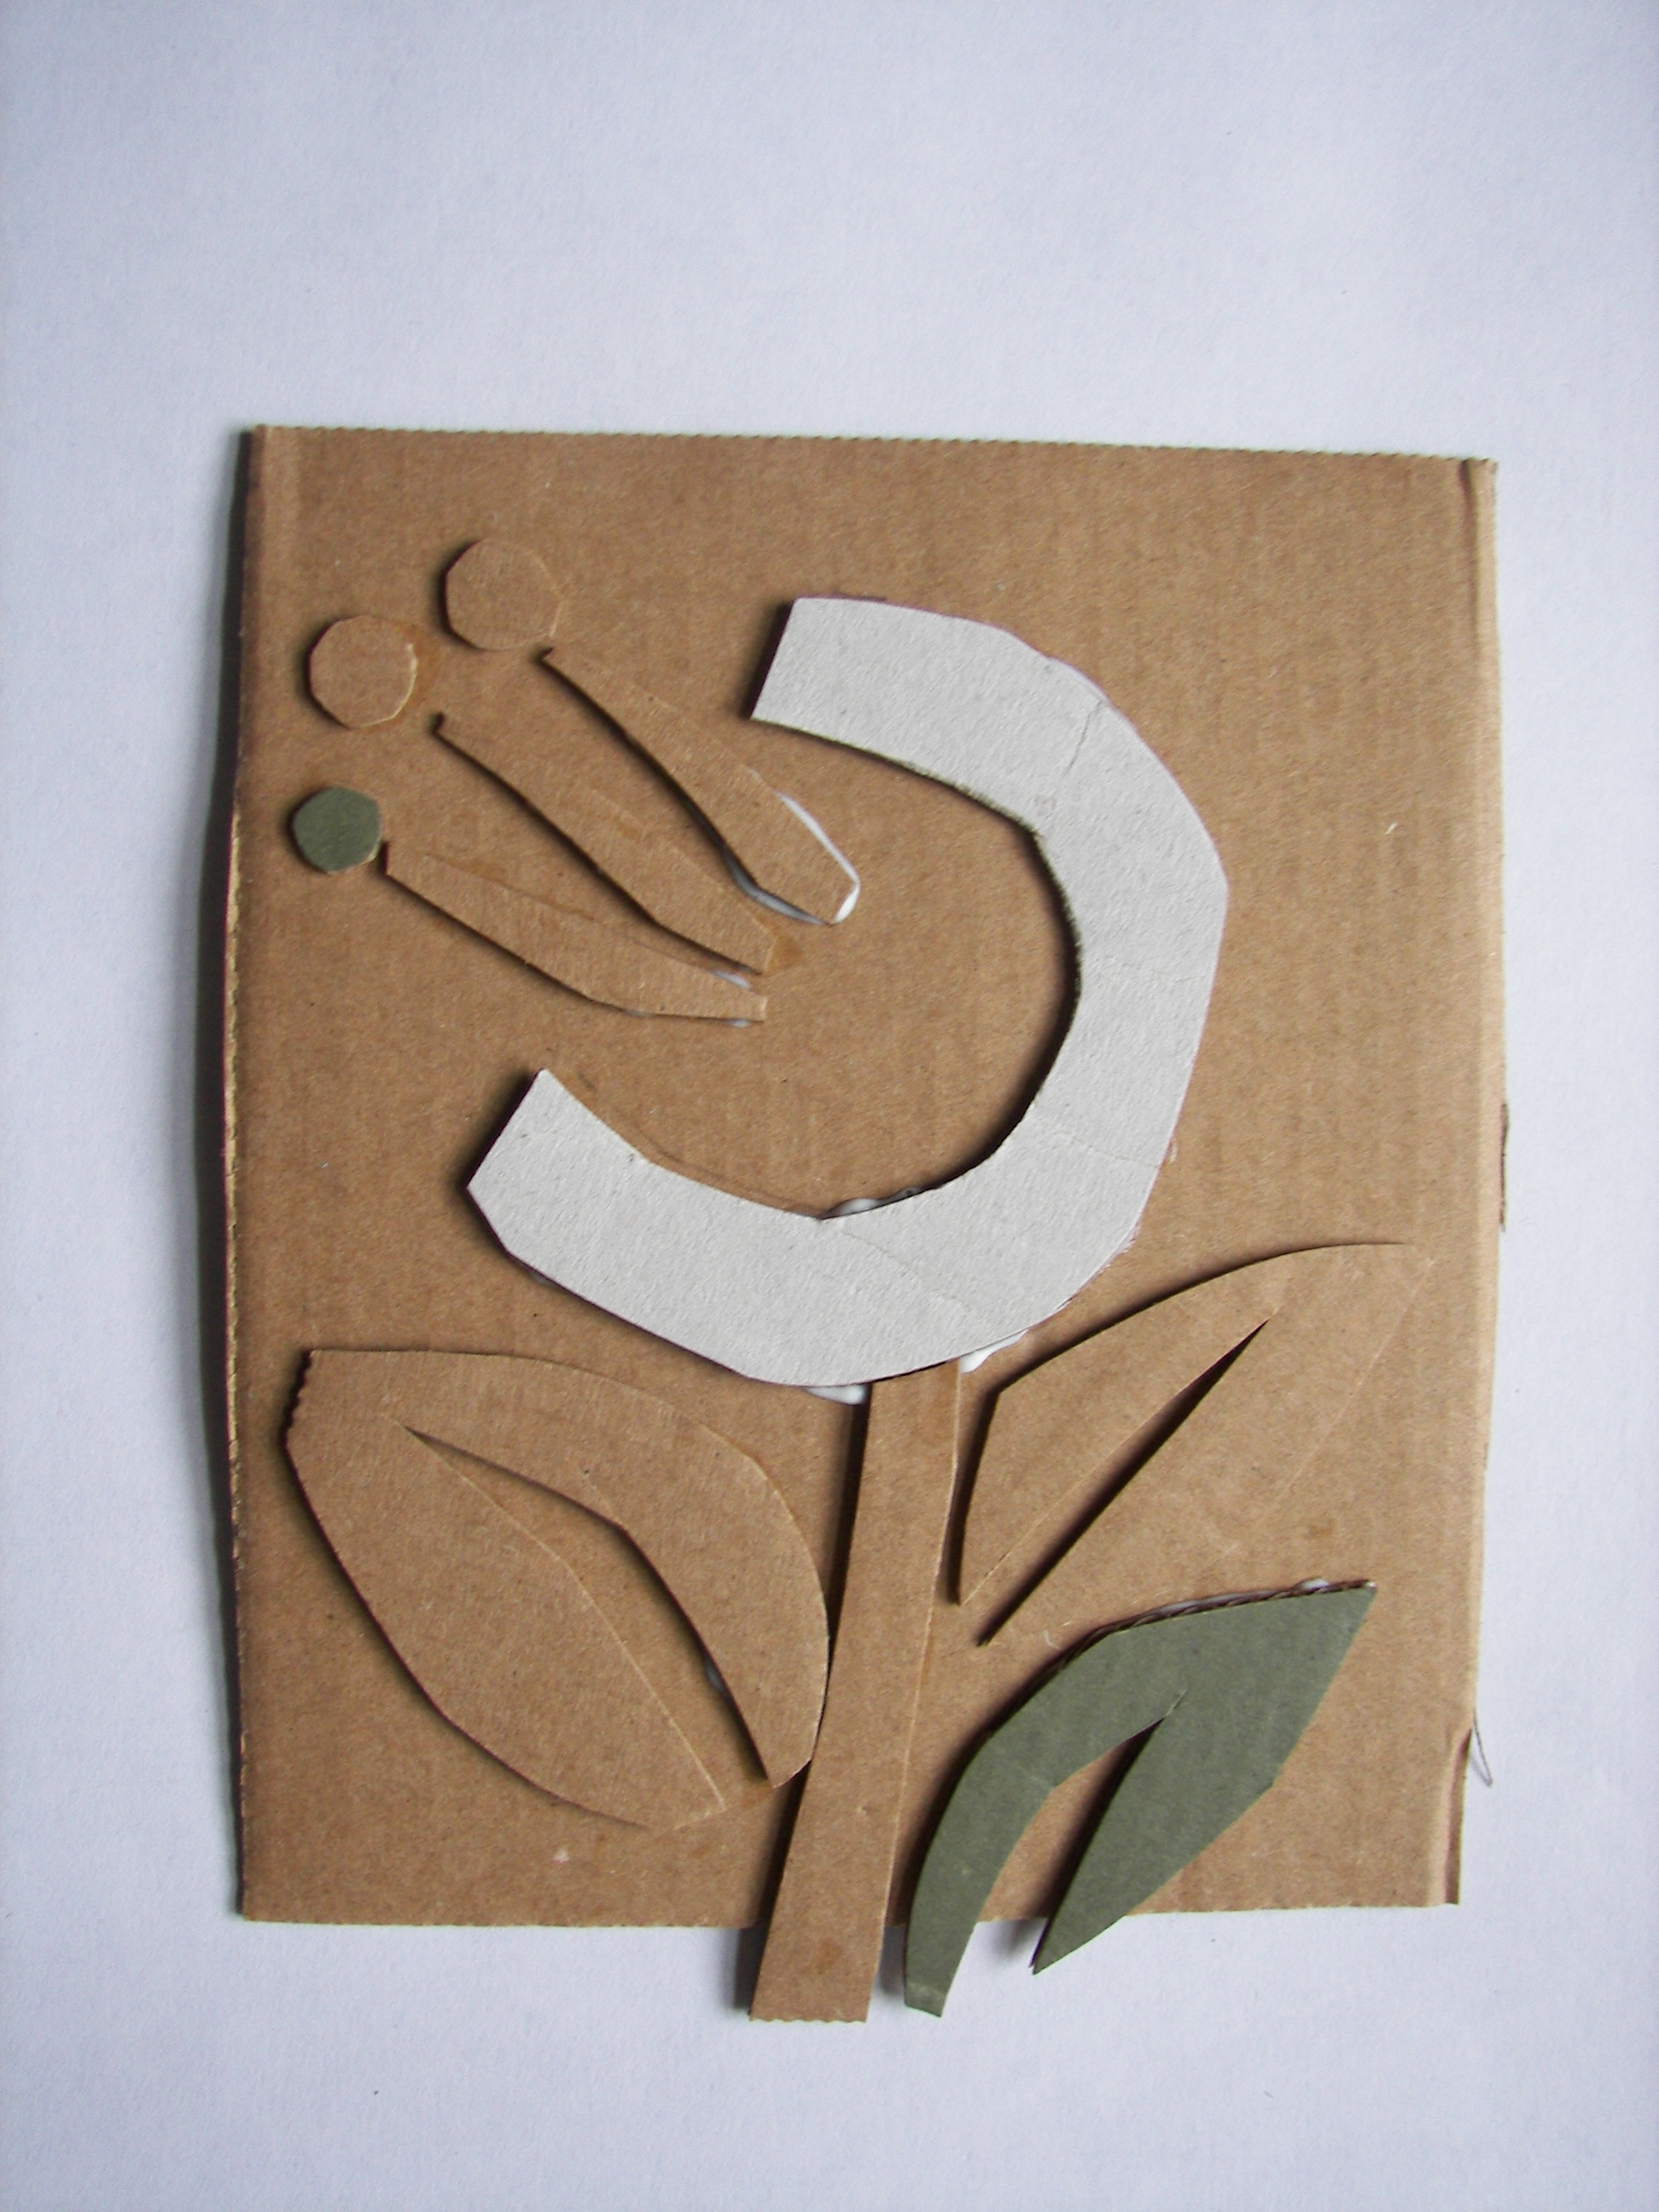 how to make name plate with cardboard